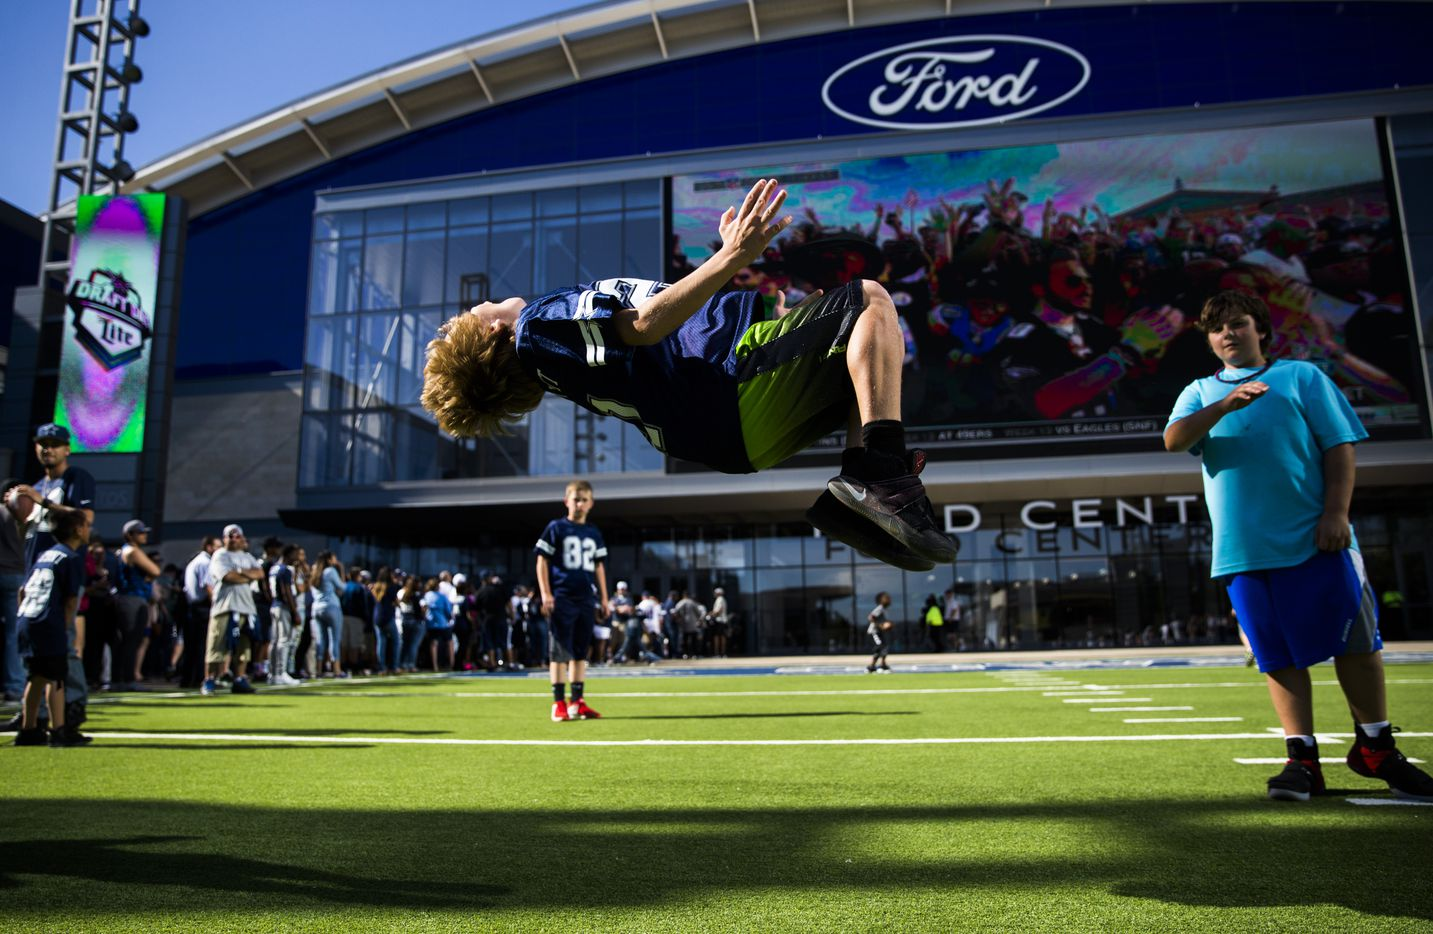 Devon Cohen, 10, does a backflip outside the Dallas Cowboys' 2017 NFL Draft Party on Thursday, April 27, 2017, at The Star in Frisco, Texas.